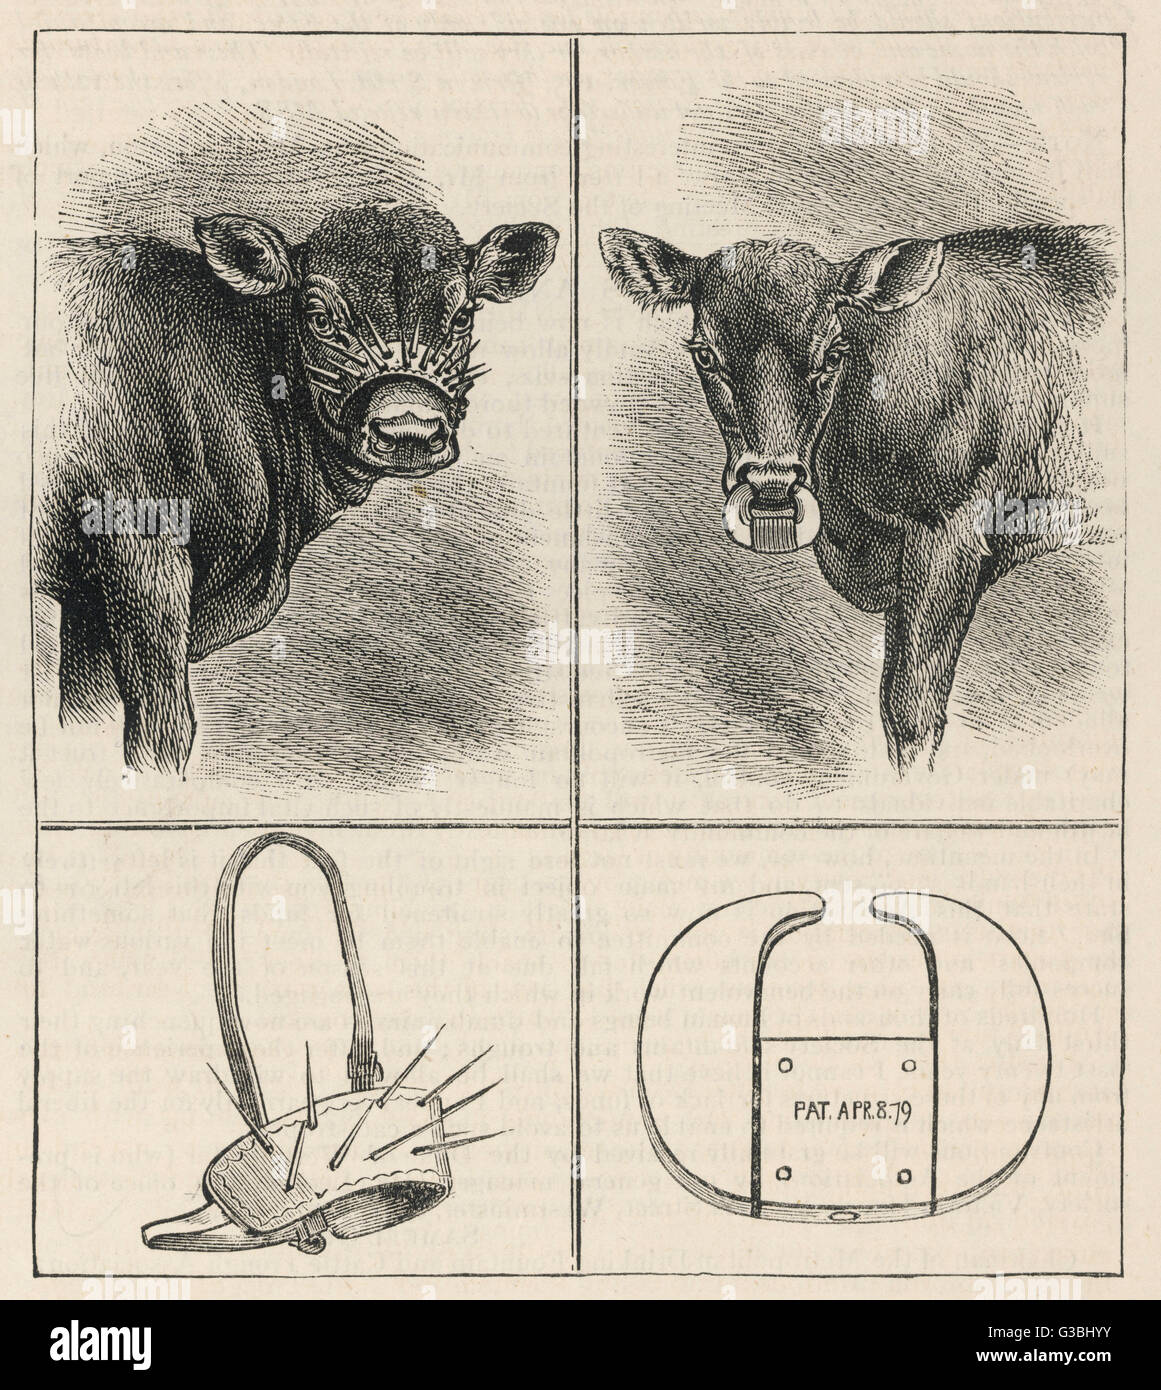 Rather alarming-looking calf-weaning devices.        Date: 1879 - Stock Image